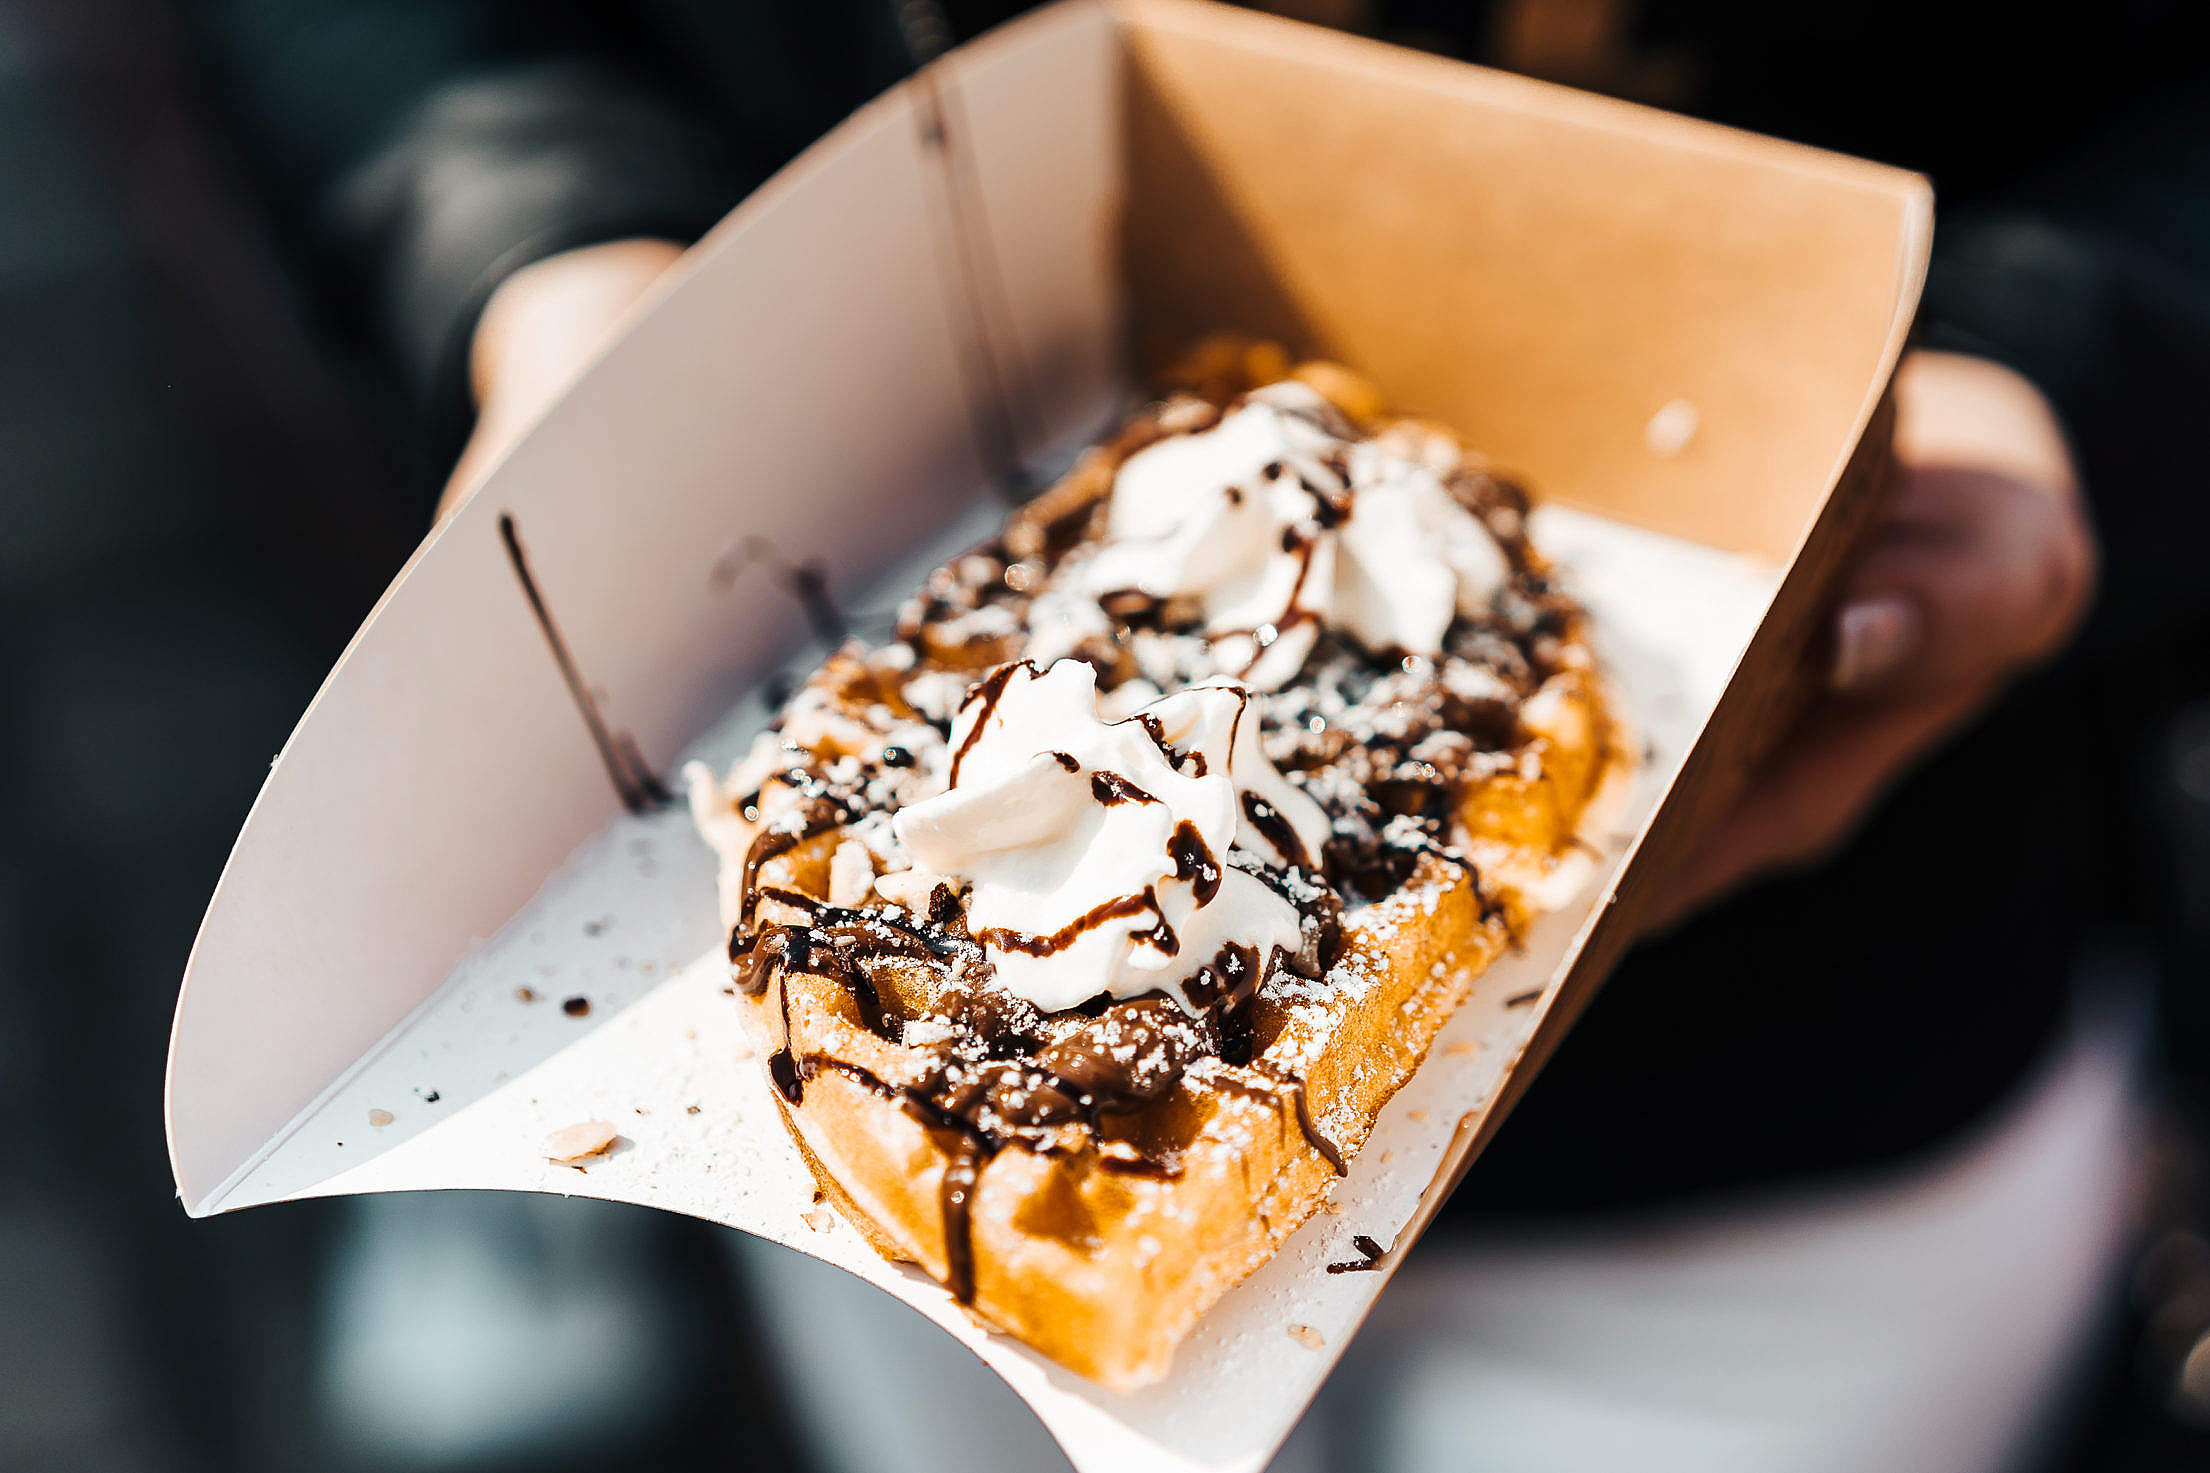 Download Yummy Chocolate Waffles from Open Air Food Market Free Stock Photo